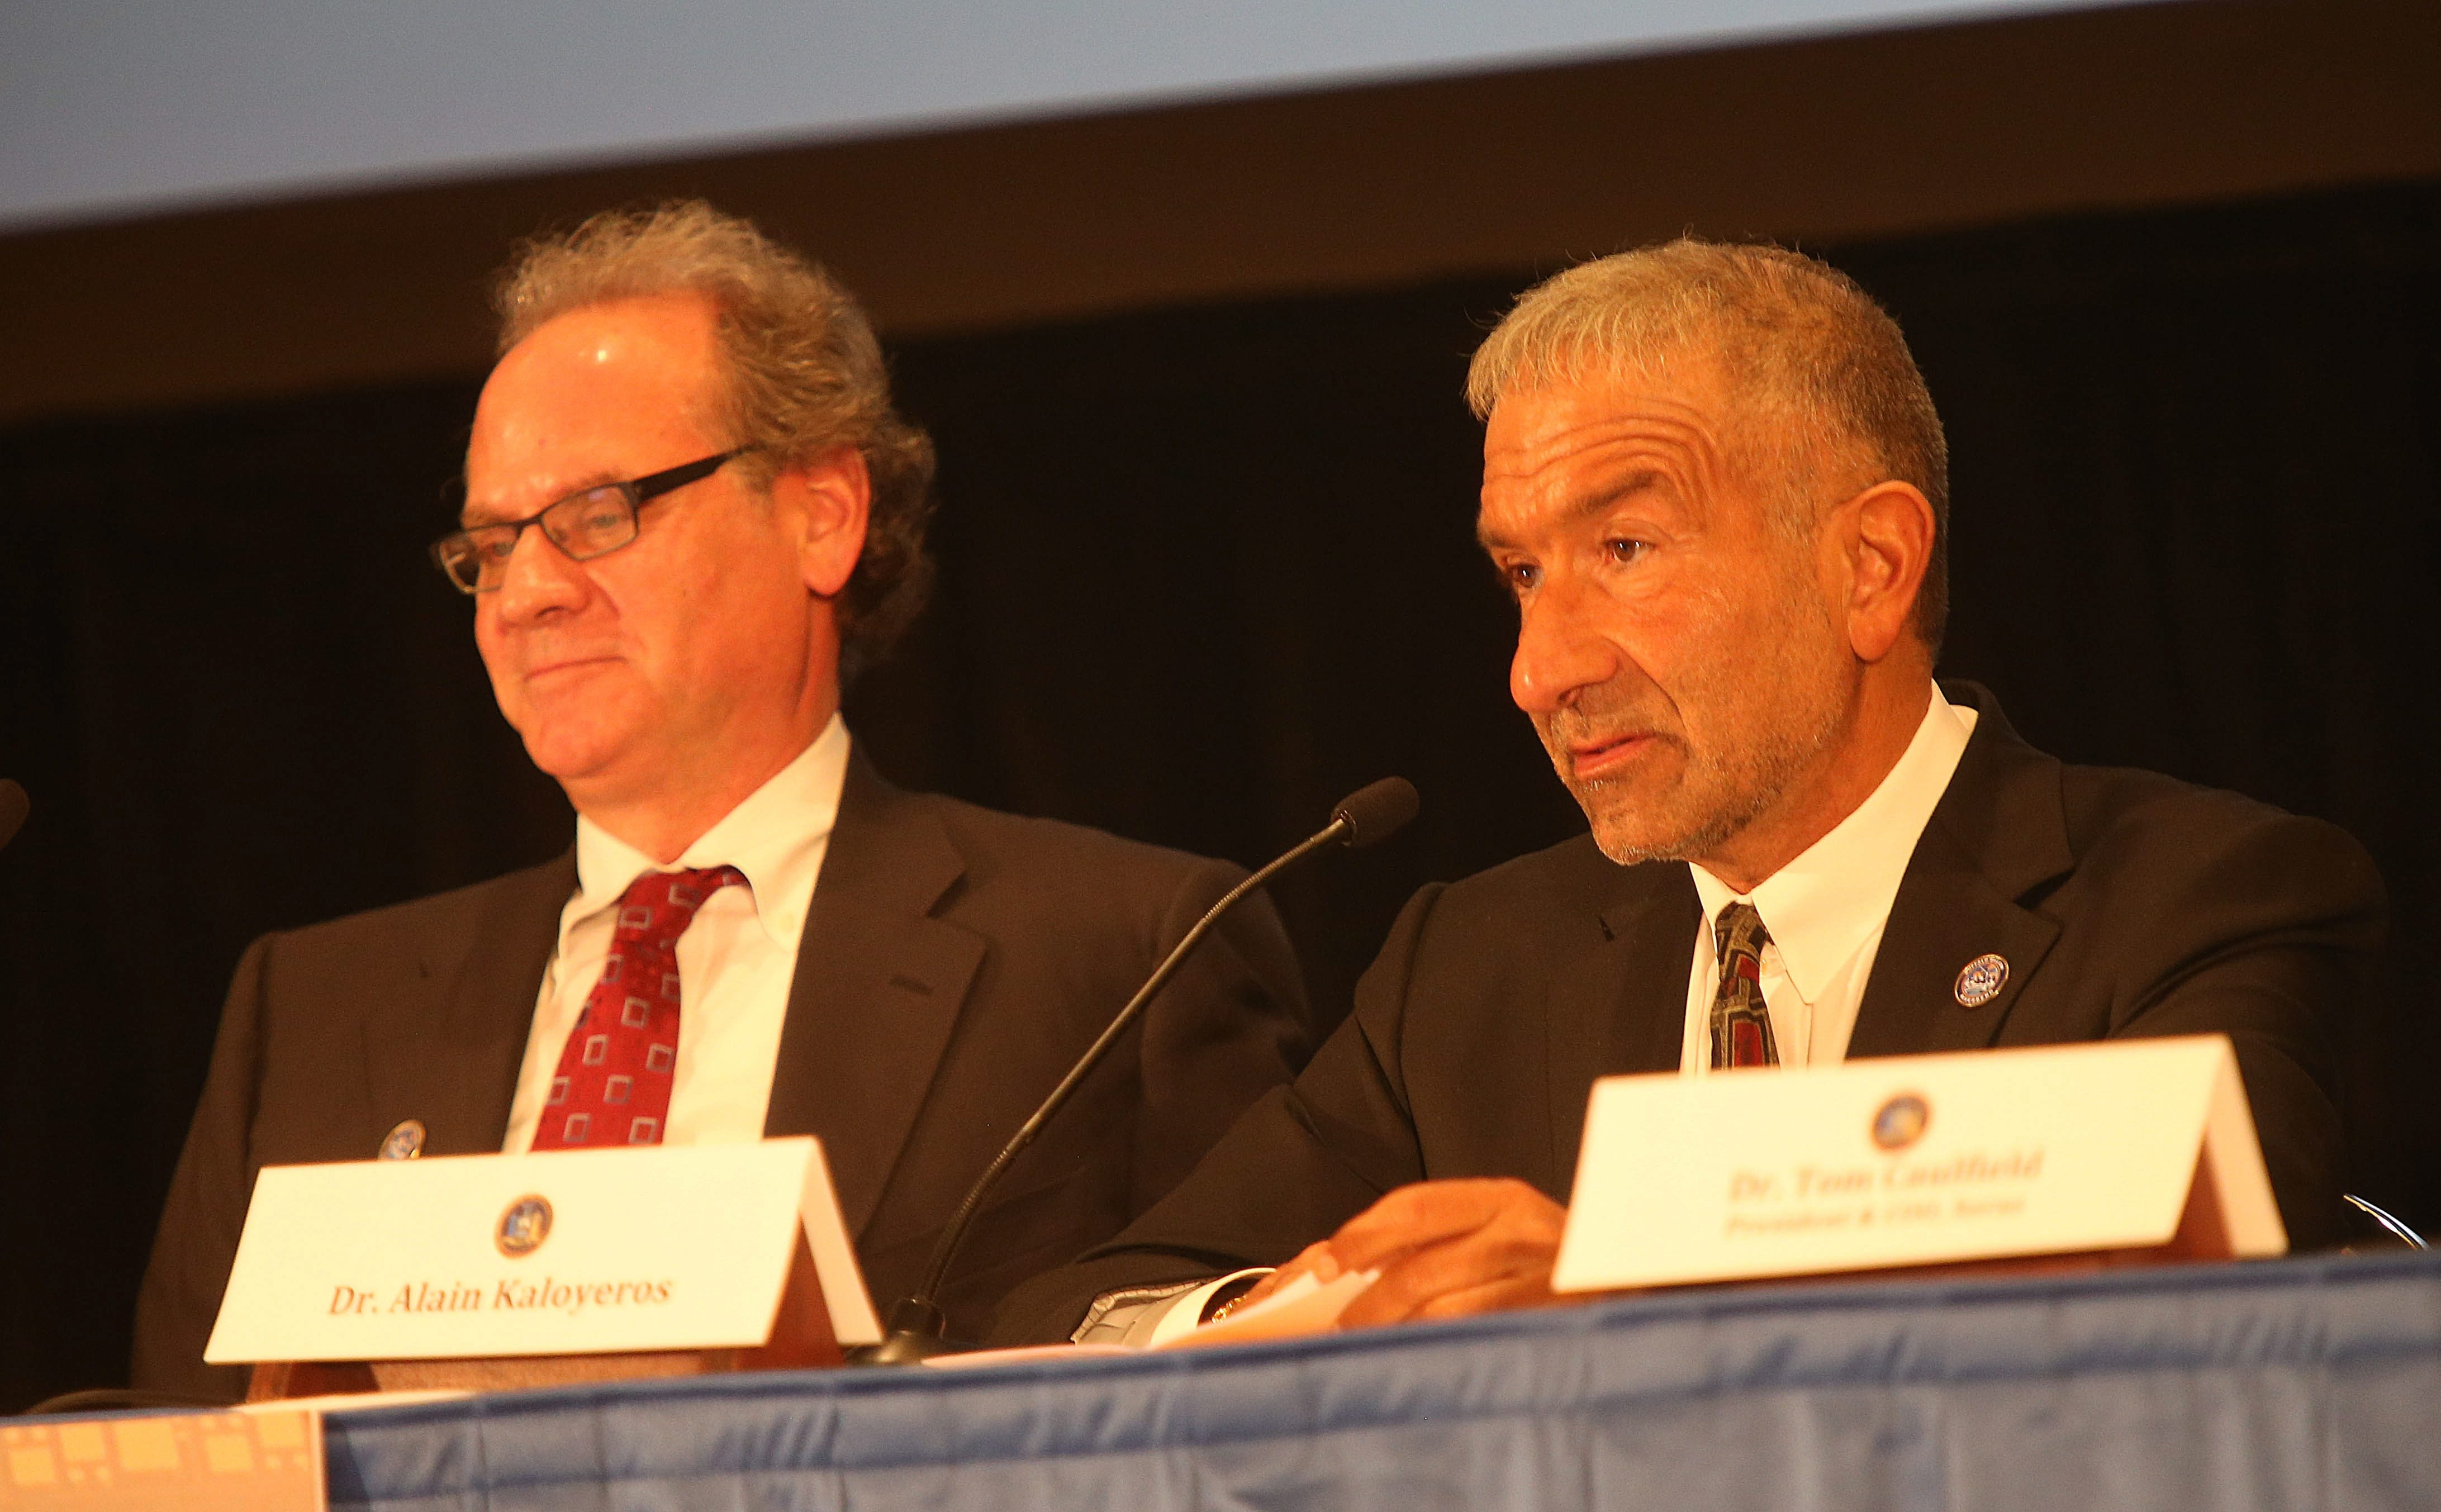 Alain Kaloyeros, right, and Howard A. Zemsky, co-chairman of the Western New York Regional Economic Development Council, were speakers at Adam's Mark Hotel to unveil the planned Buffalo High-Tech Manufacturing Innovation Hub @ RiverBend. Kaloyeros, CEO of the SUNY College of Nanoscale Science and Engineering in Albany, is at the center of the project.